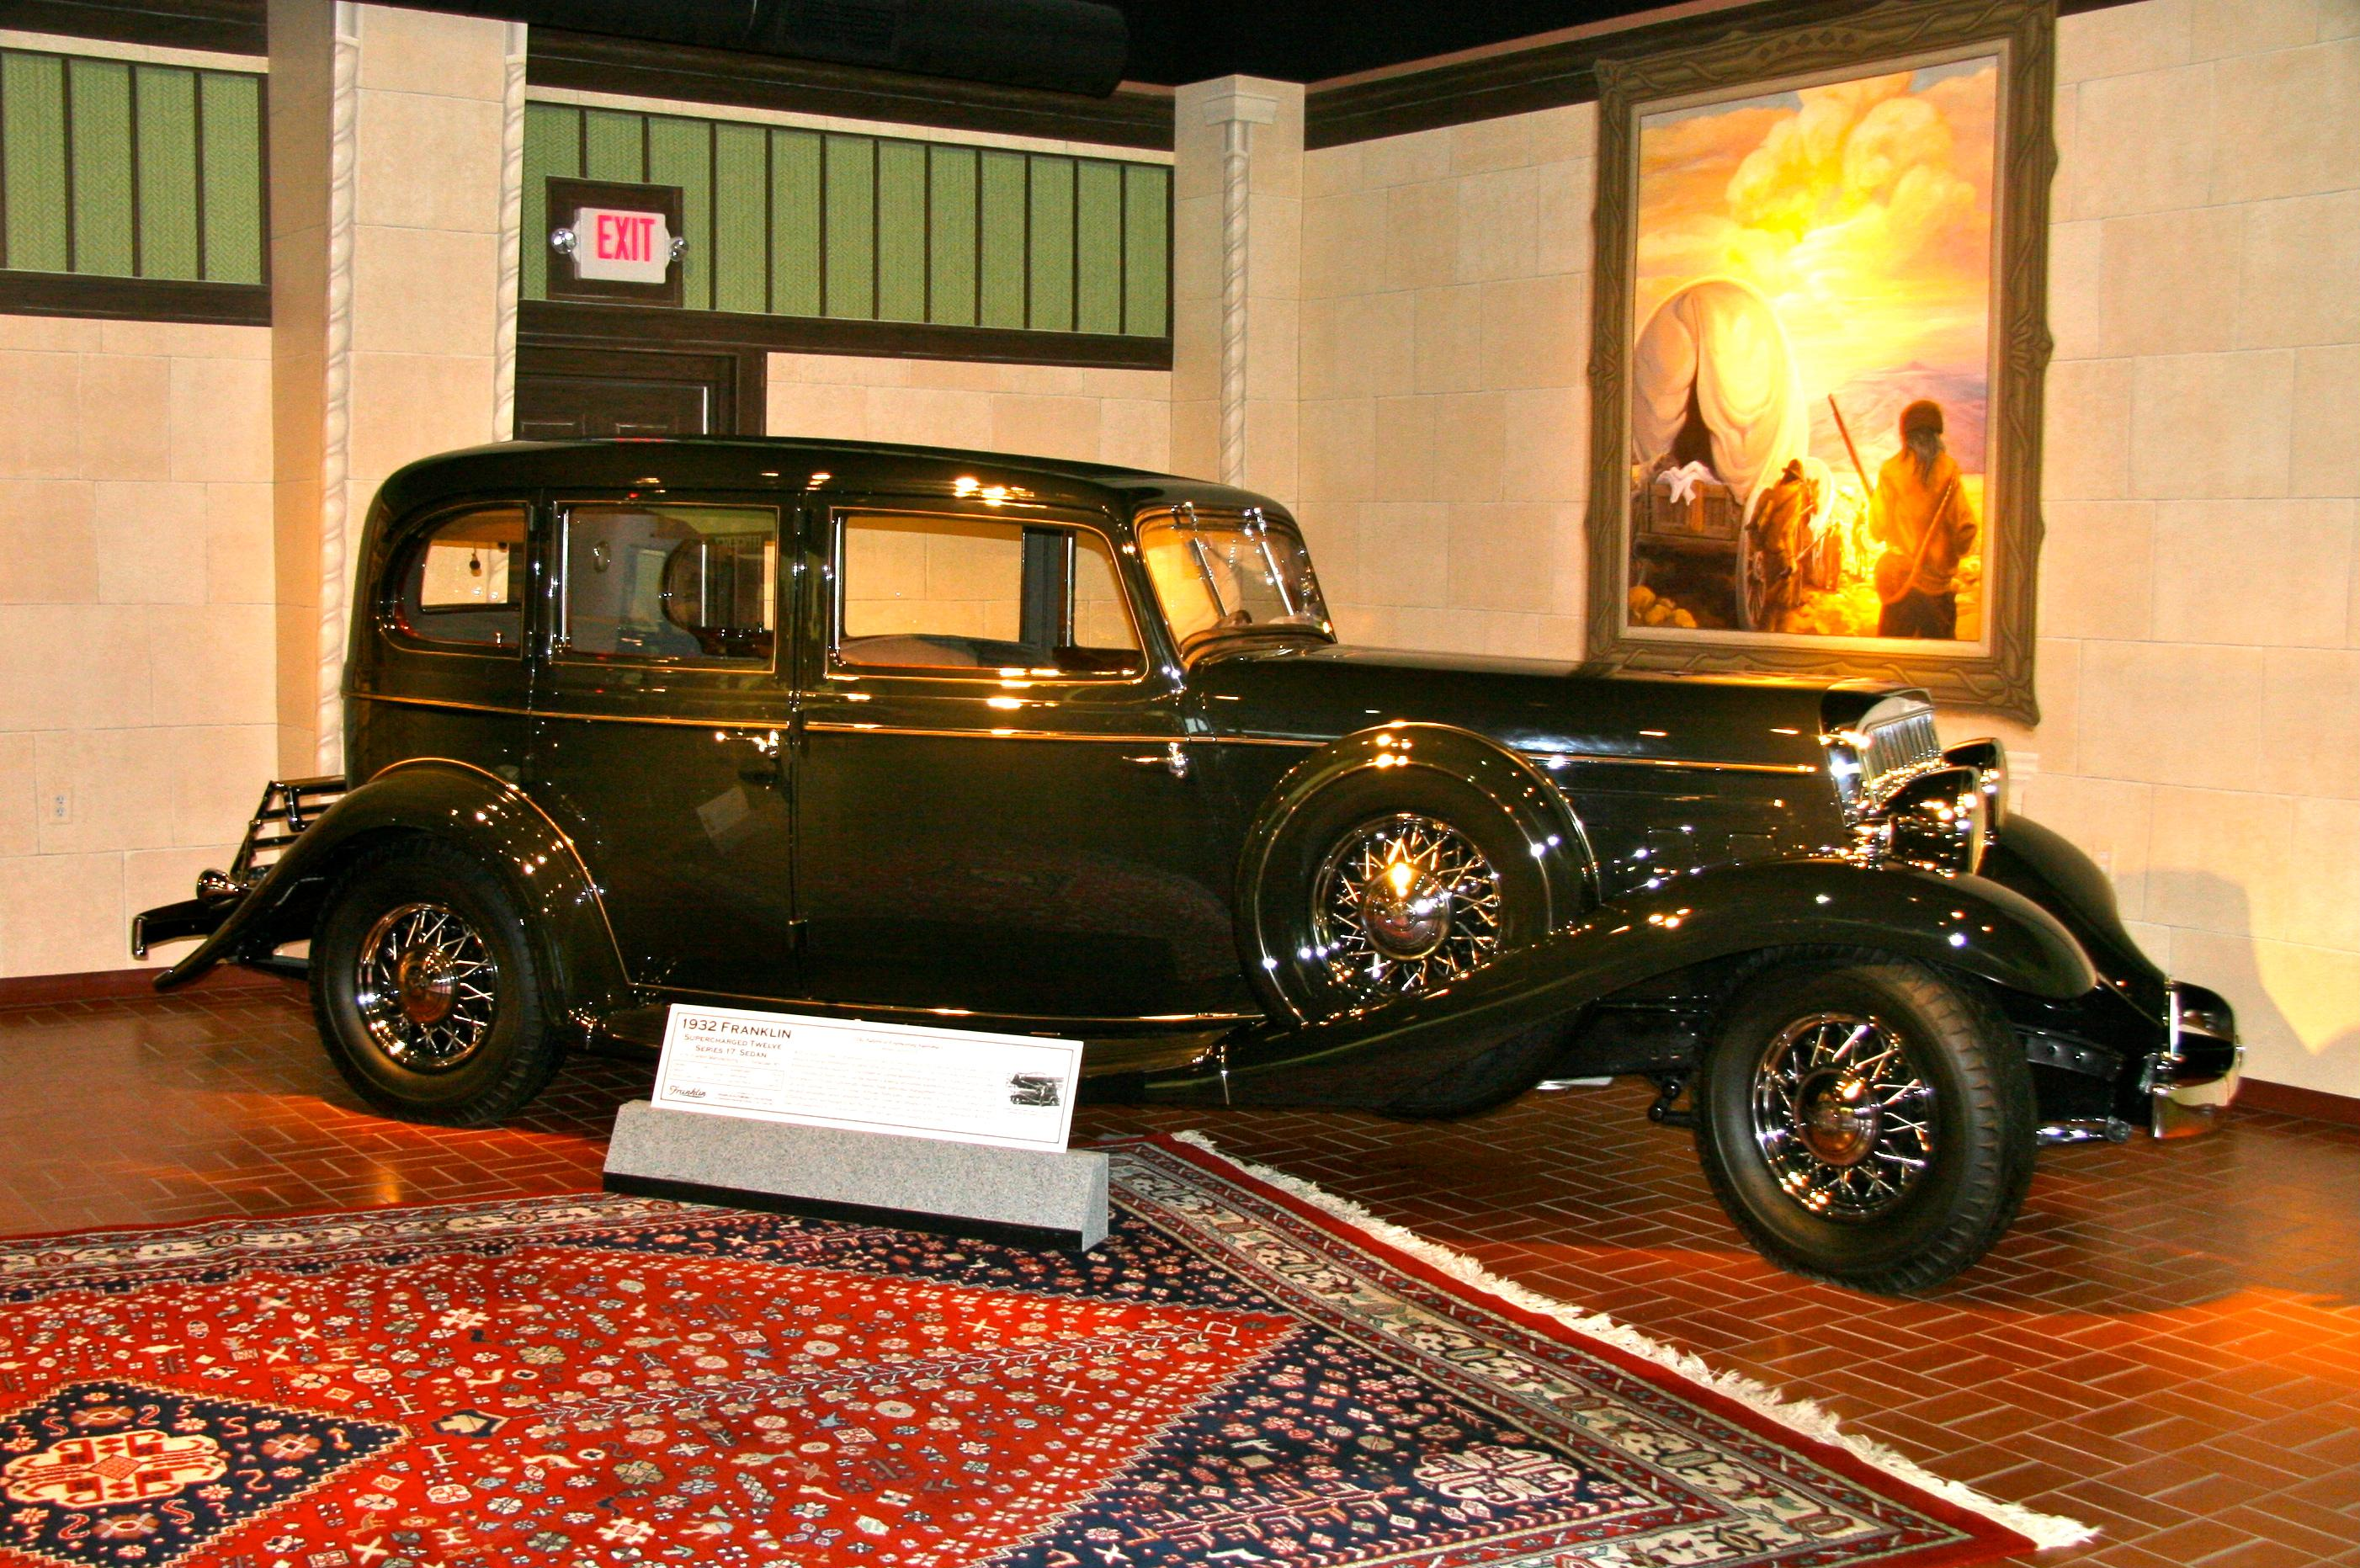 Car of the Week: 1925 Rollin touring - Old Cars Weekly